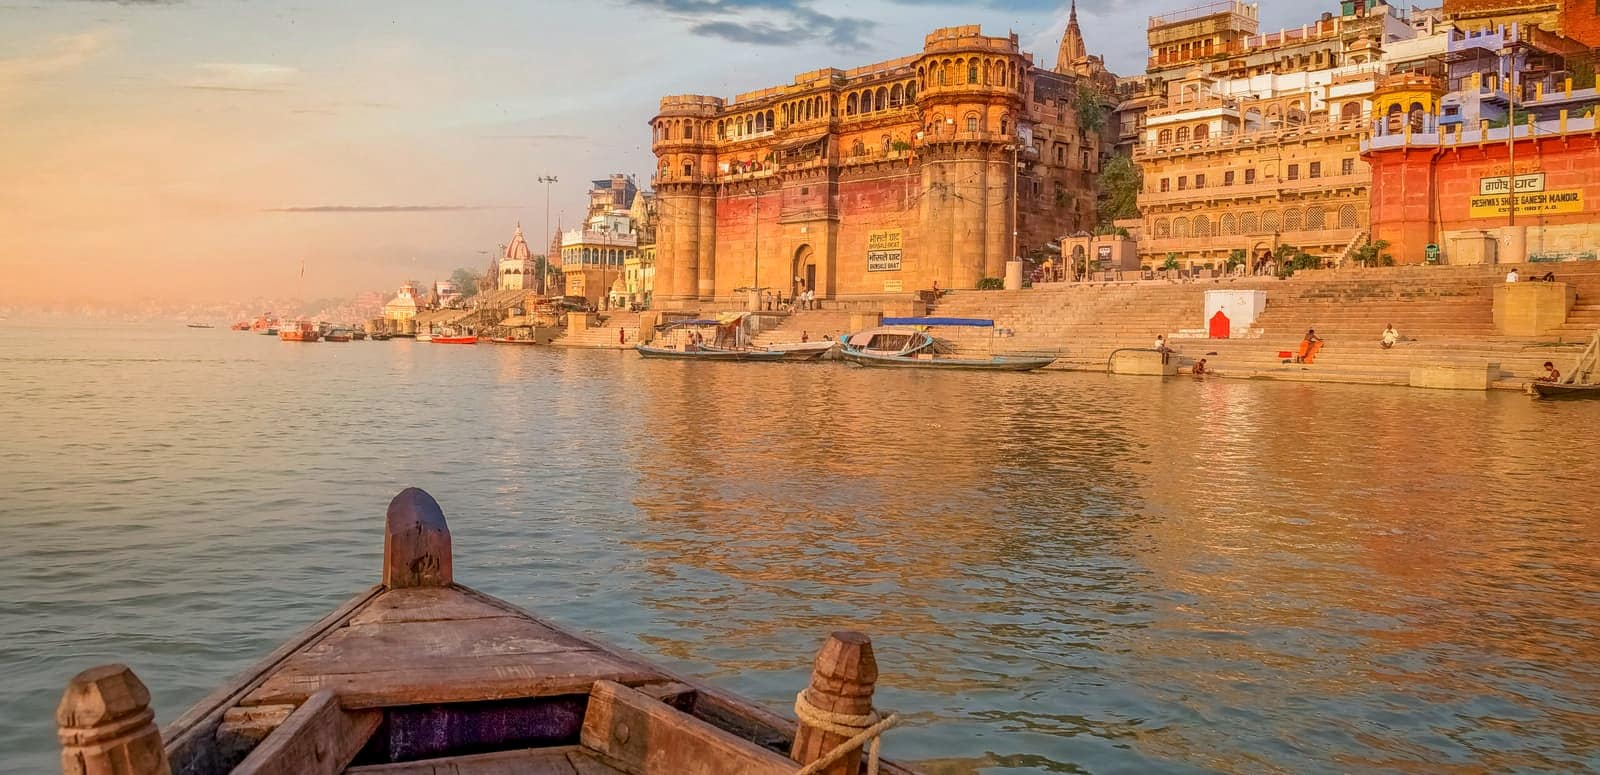 1549342507_1527582699_things_to_do_in_varanasi_main.jpg.jpg